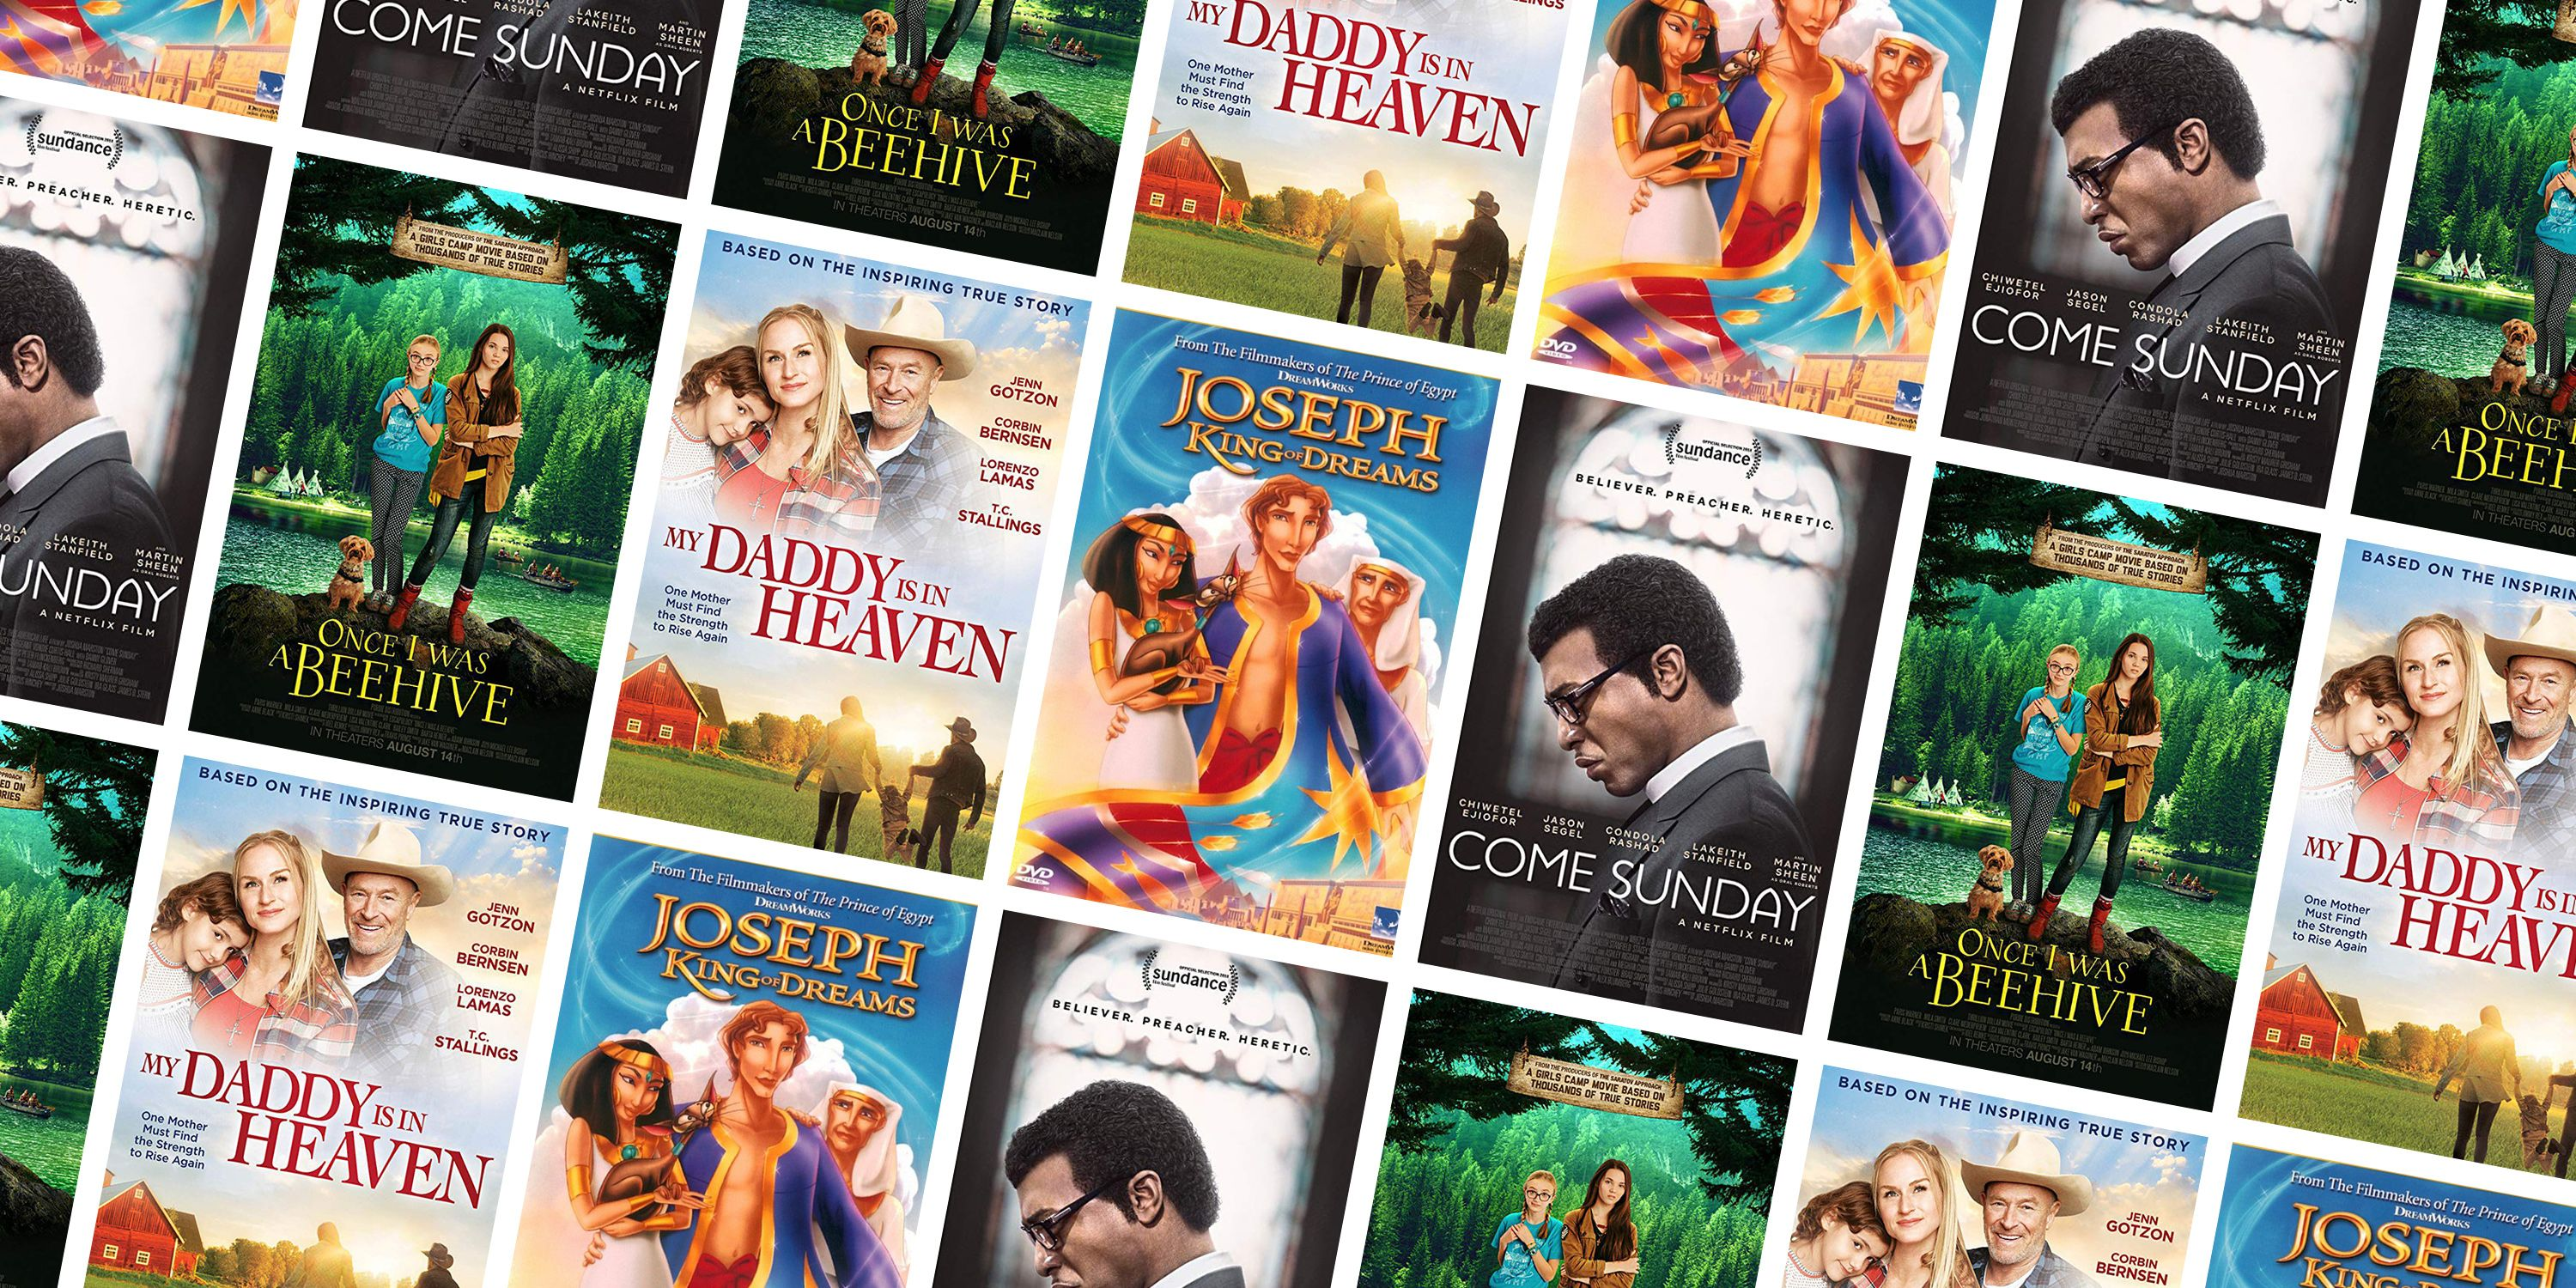 20 Best Christian Movies on Netflix 2019 - Free Religious